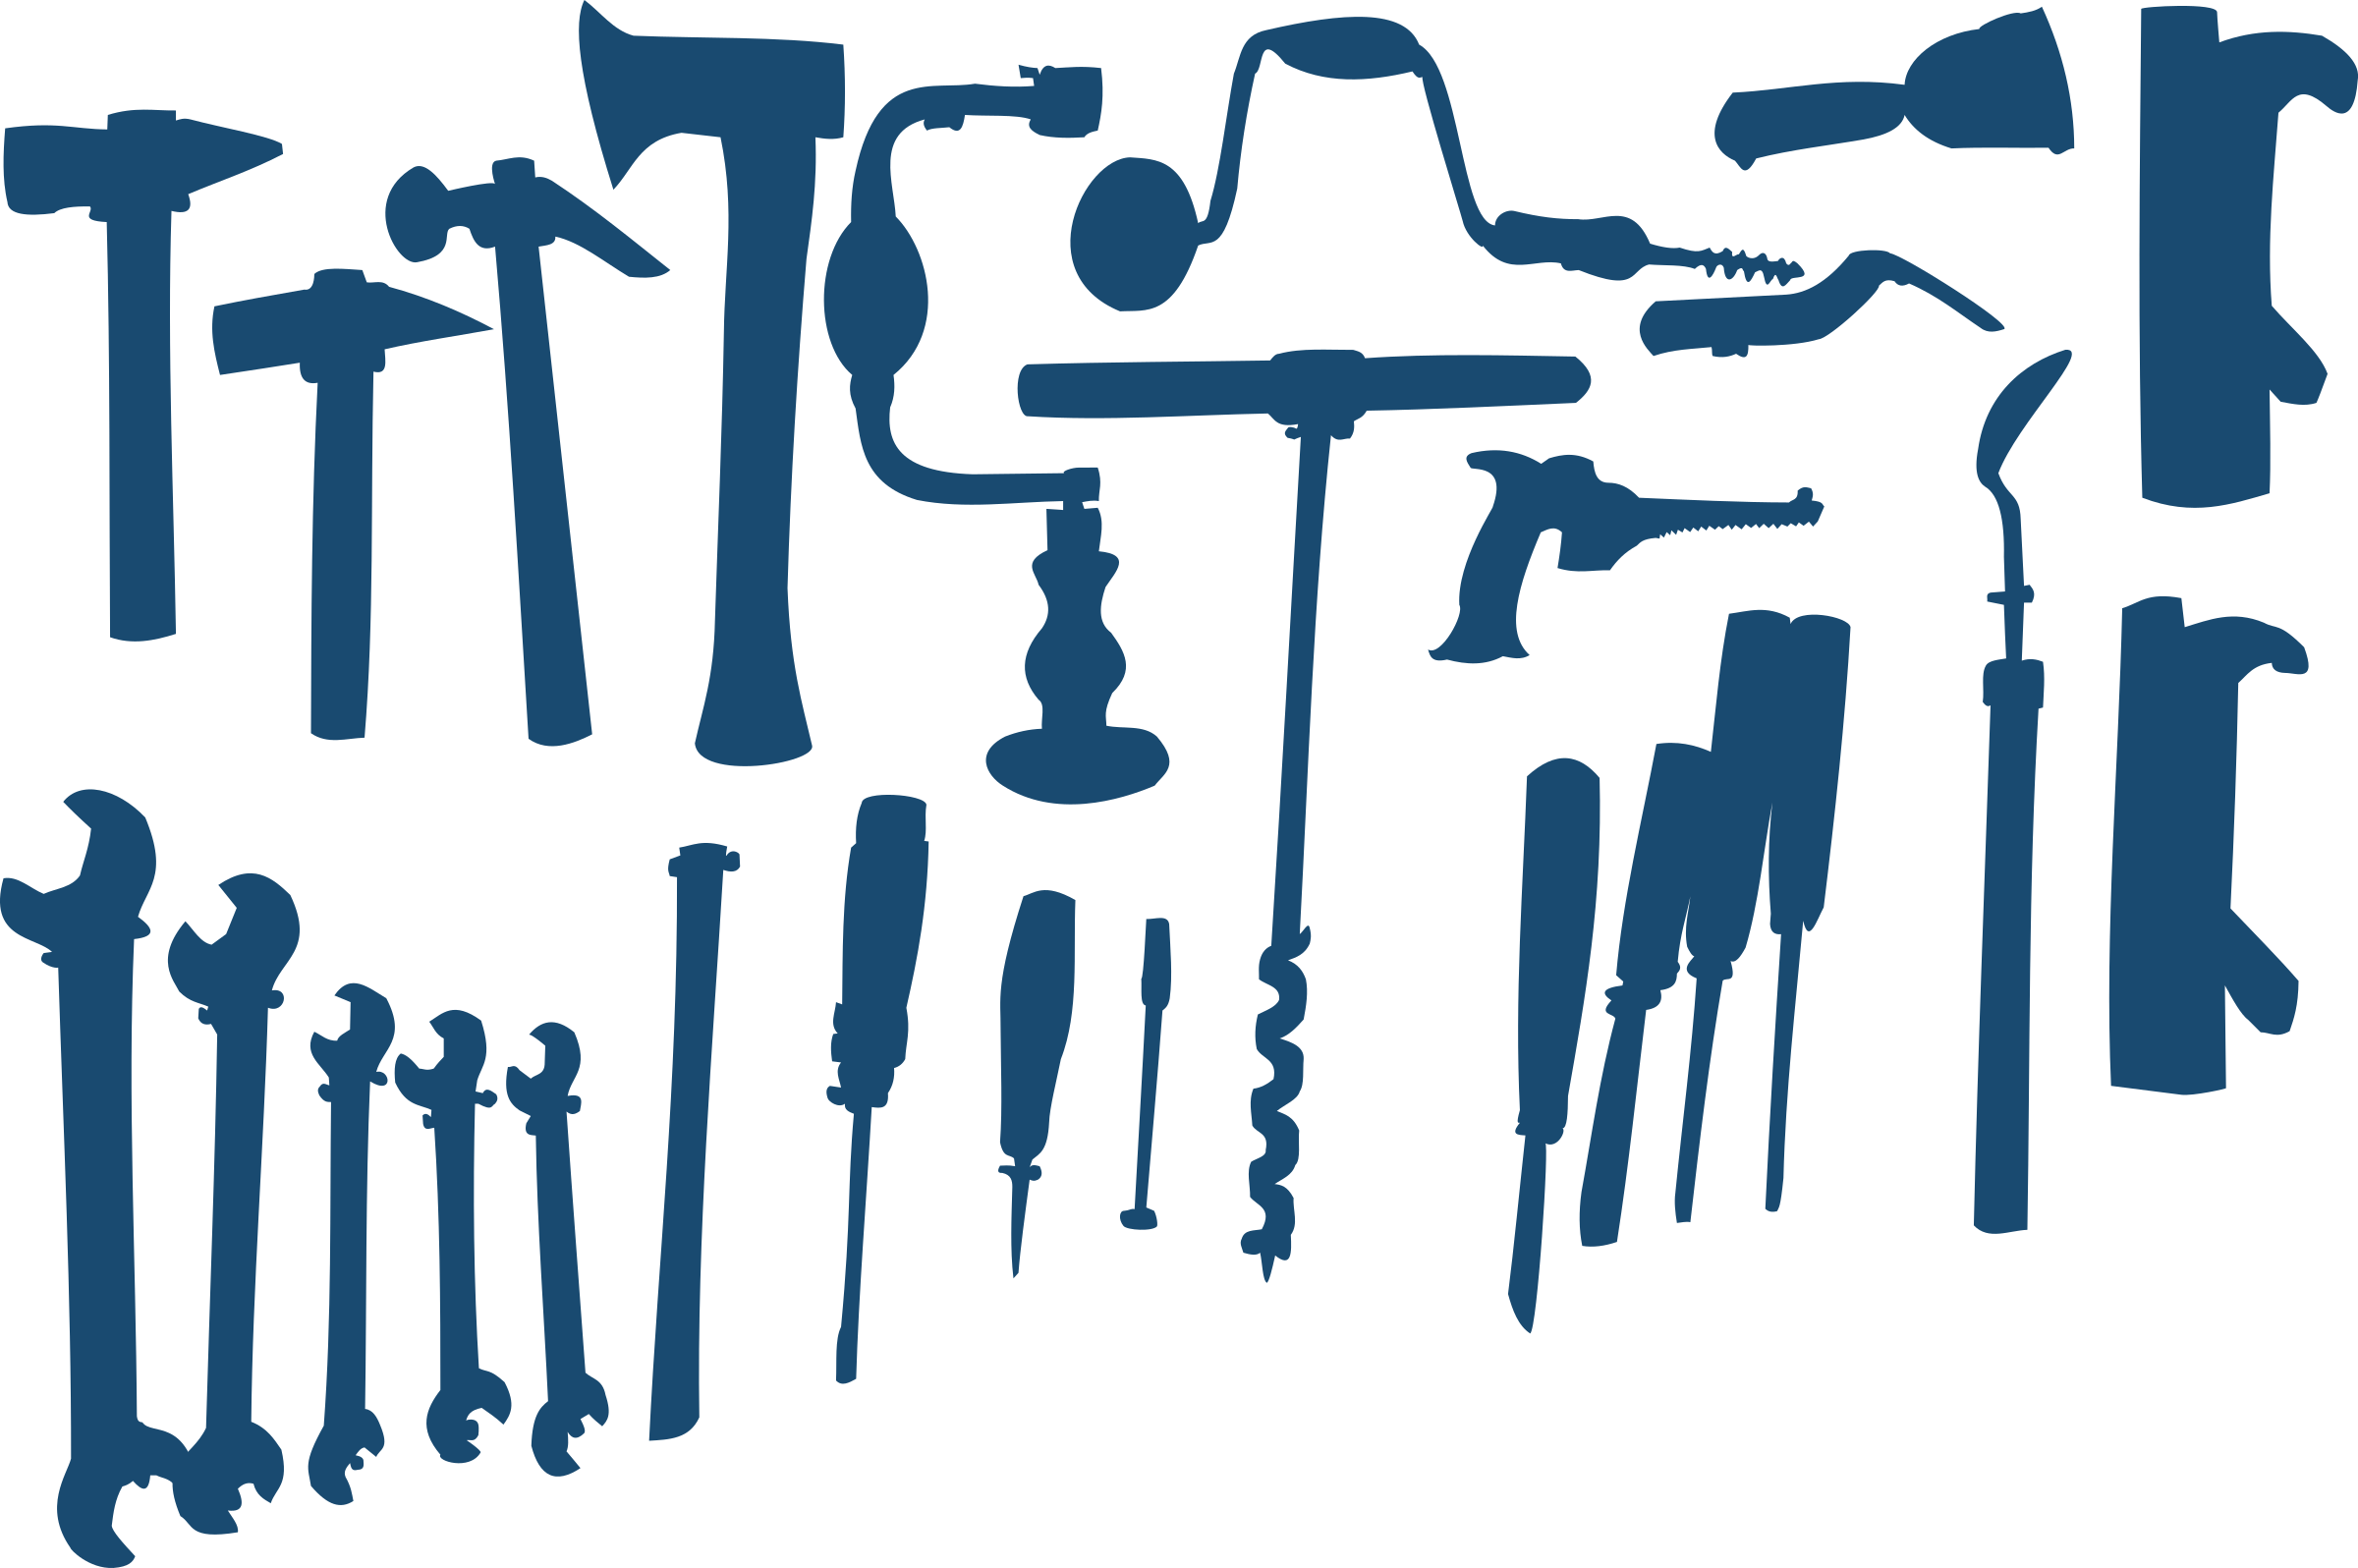 Tools silhouette at getdrawings. Hammer clipart hammer chisel